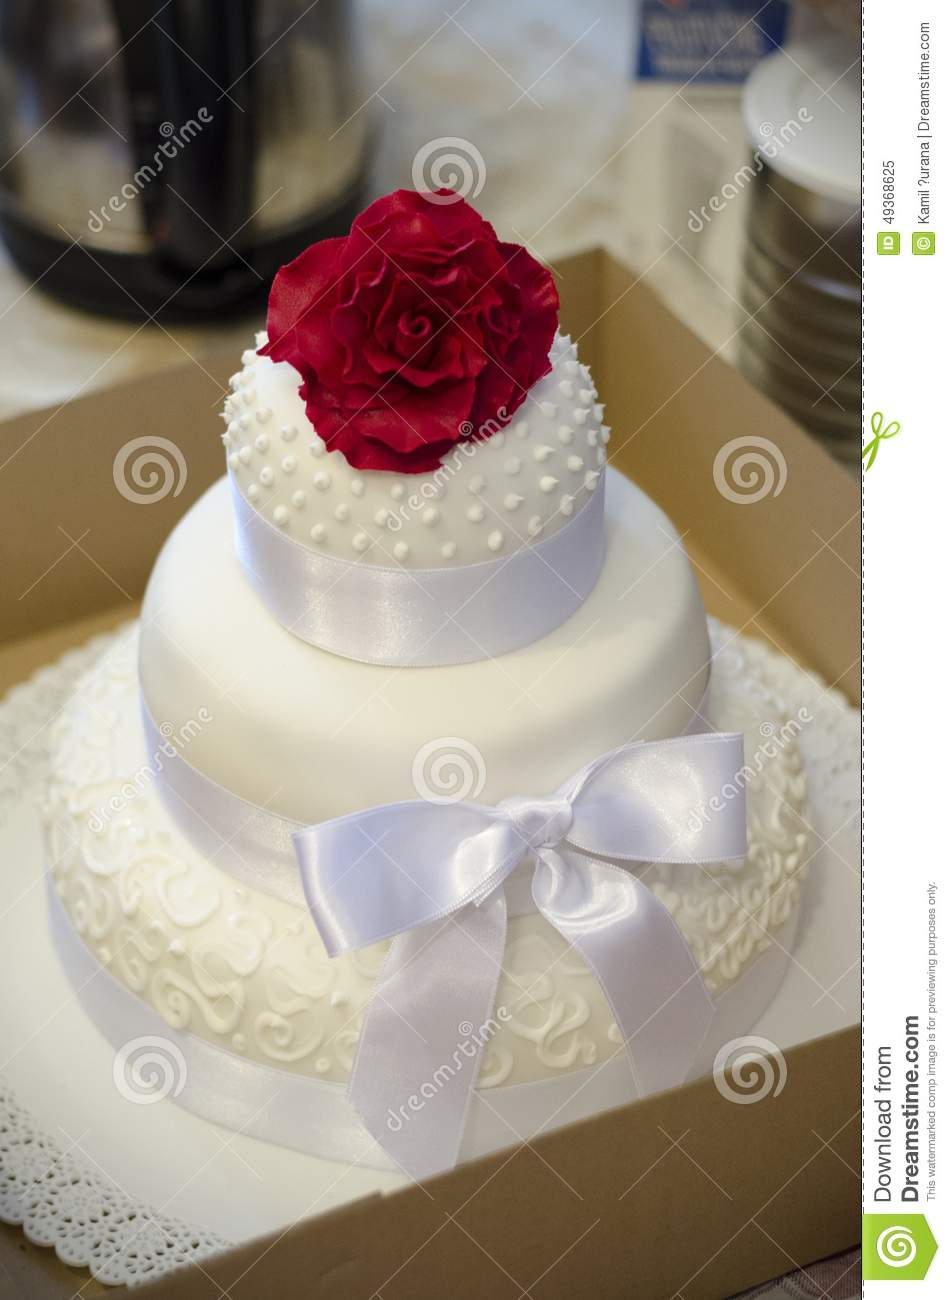 Square Wedding Cake Red Roses